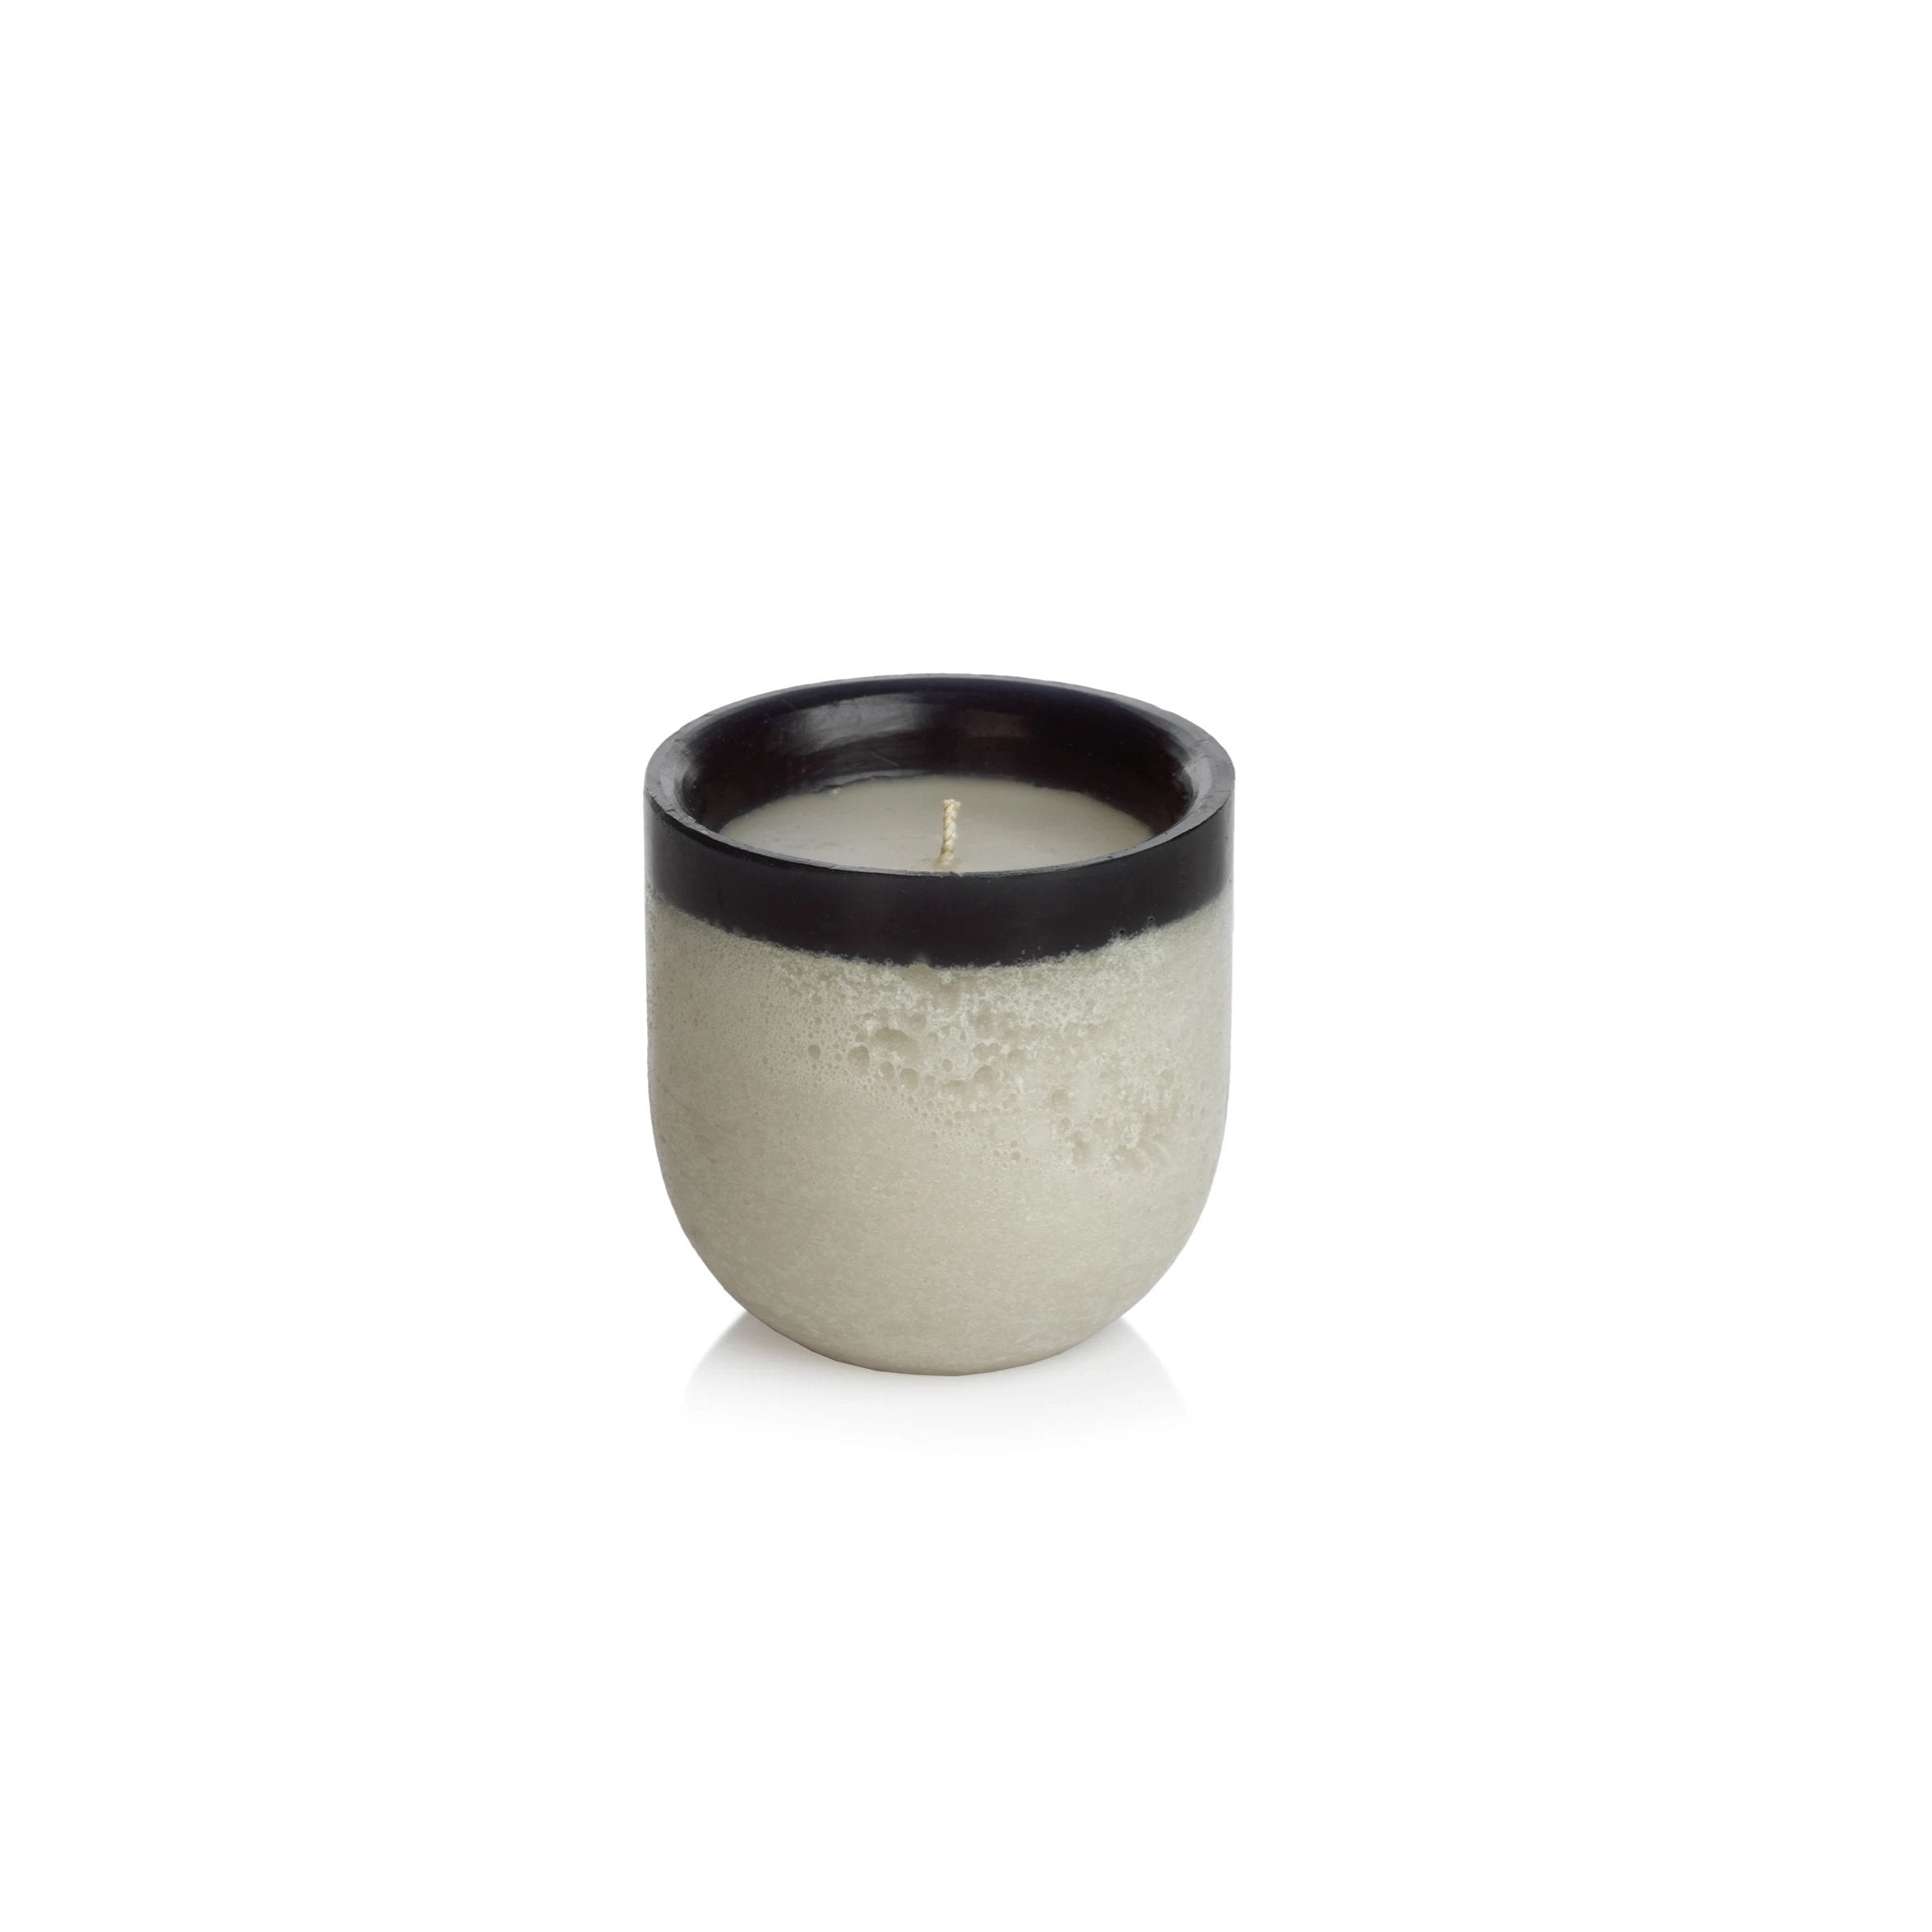 Shoreline Scented Candle - Fig Vetiver / Black - CARLYLE AVENUE